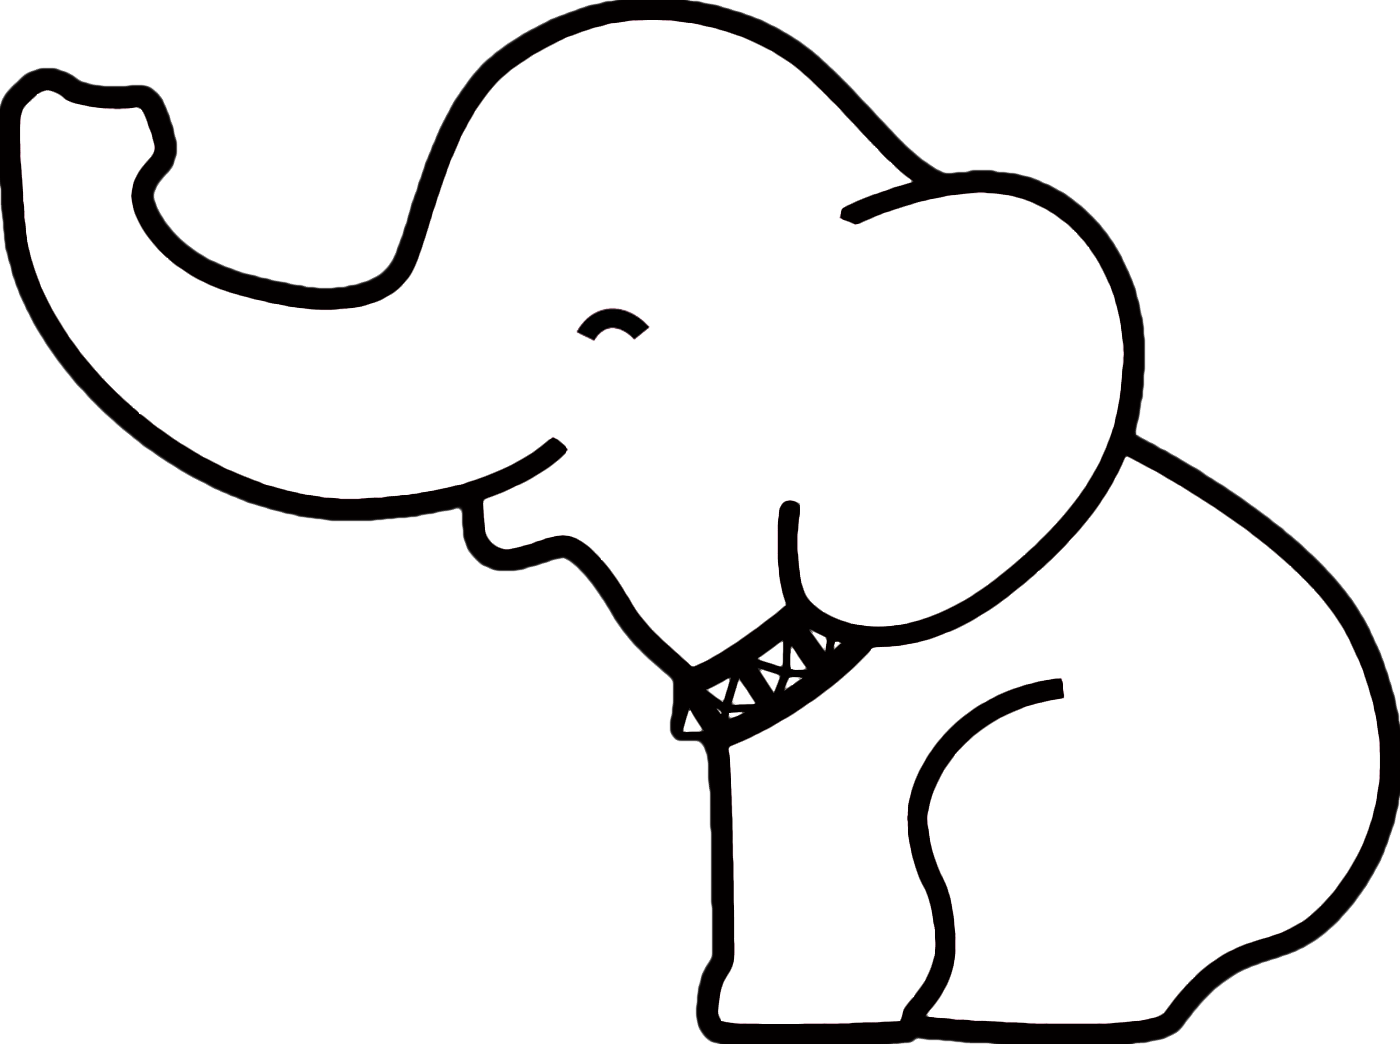 Cute animal outline png. Pin elephant on pinterest